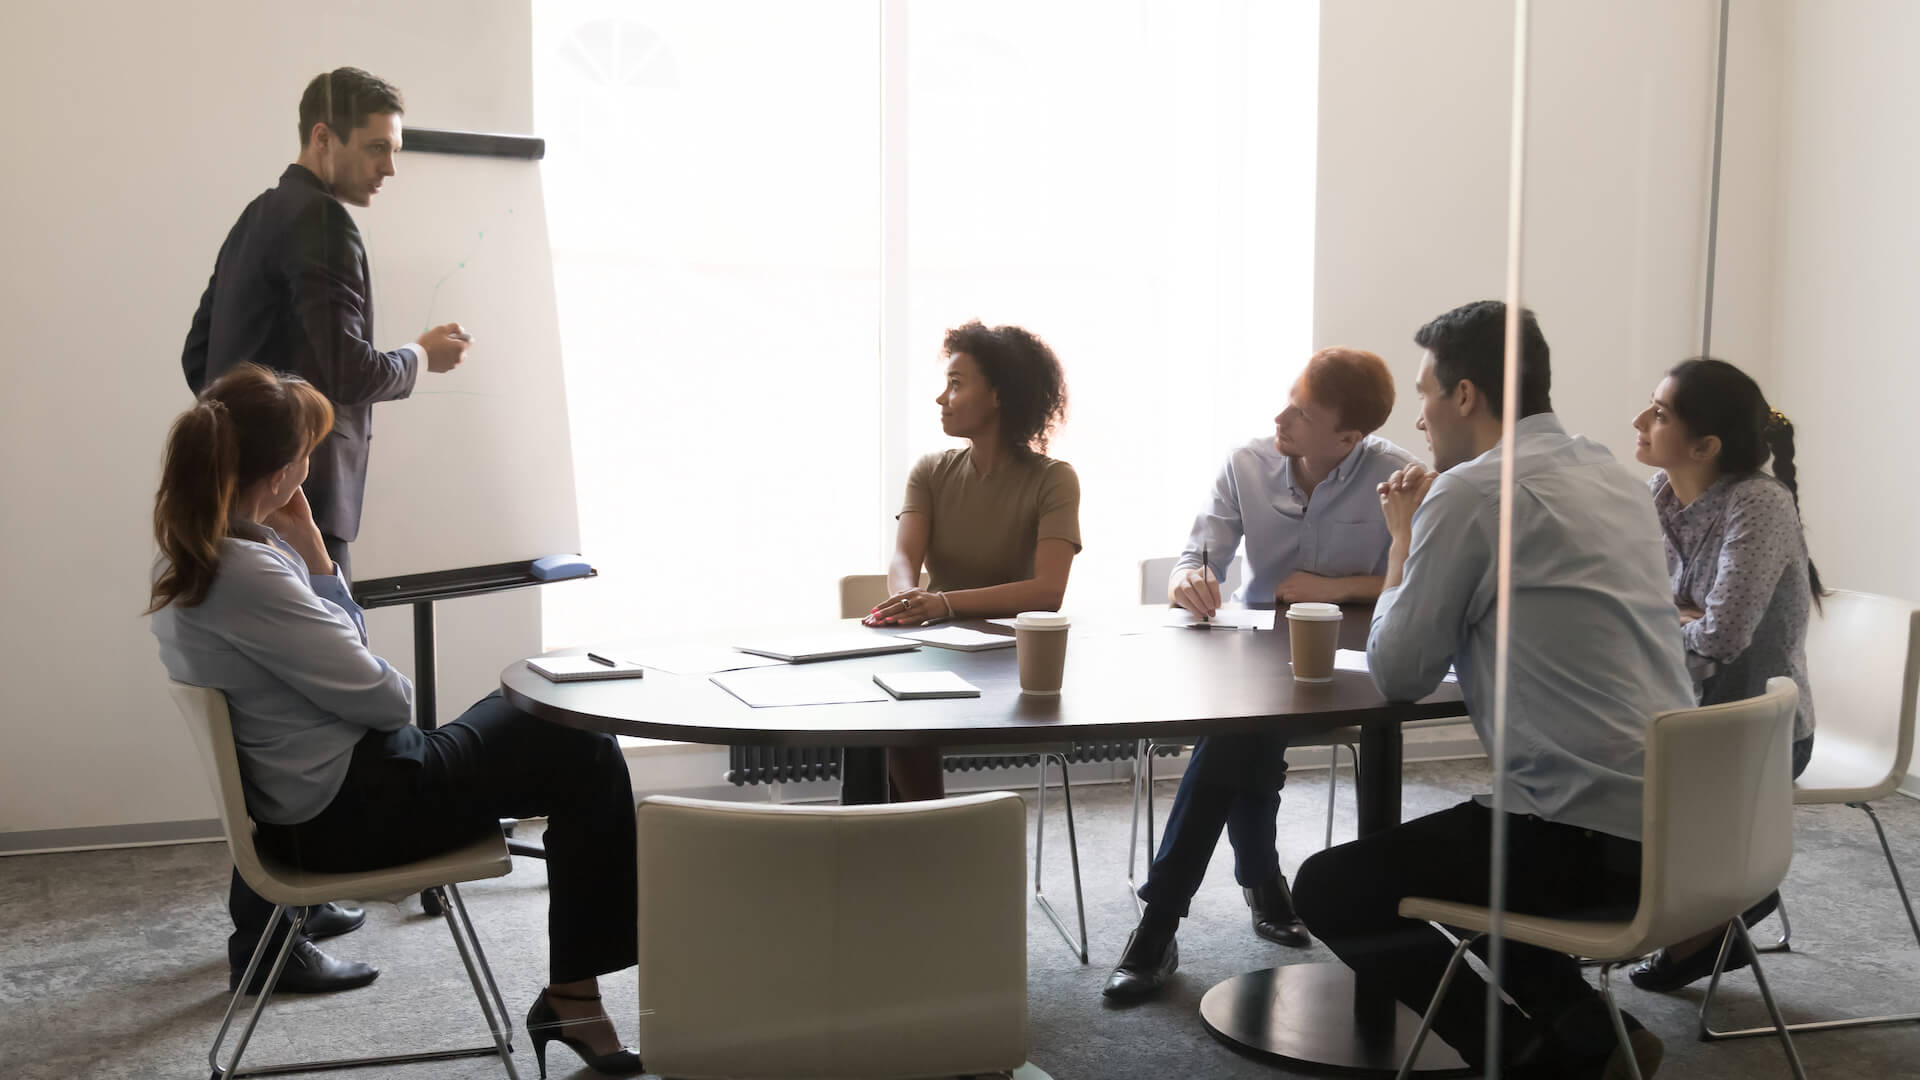 How to measure workplace learning